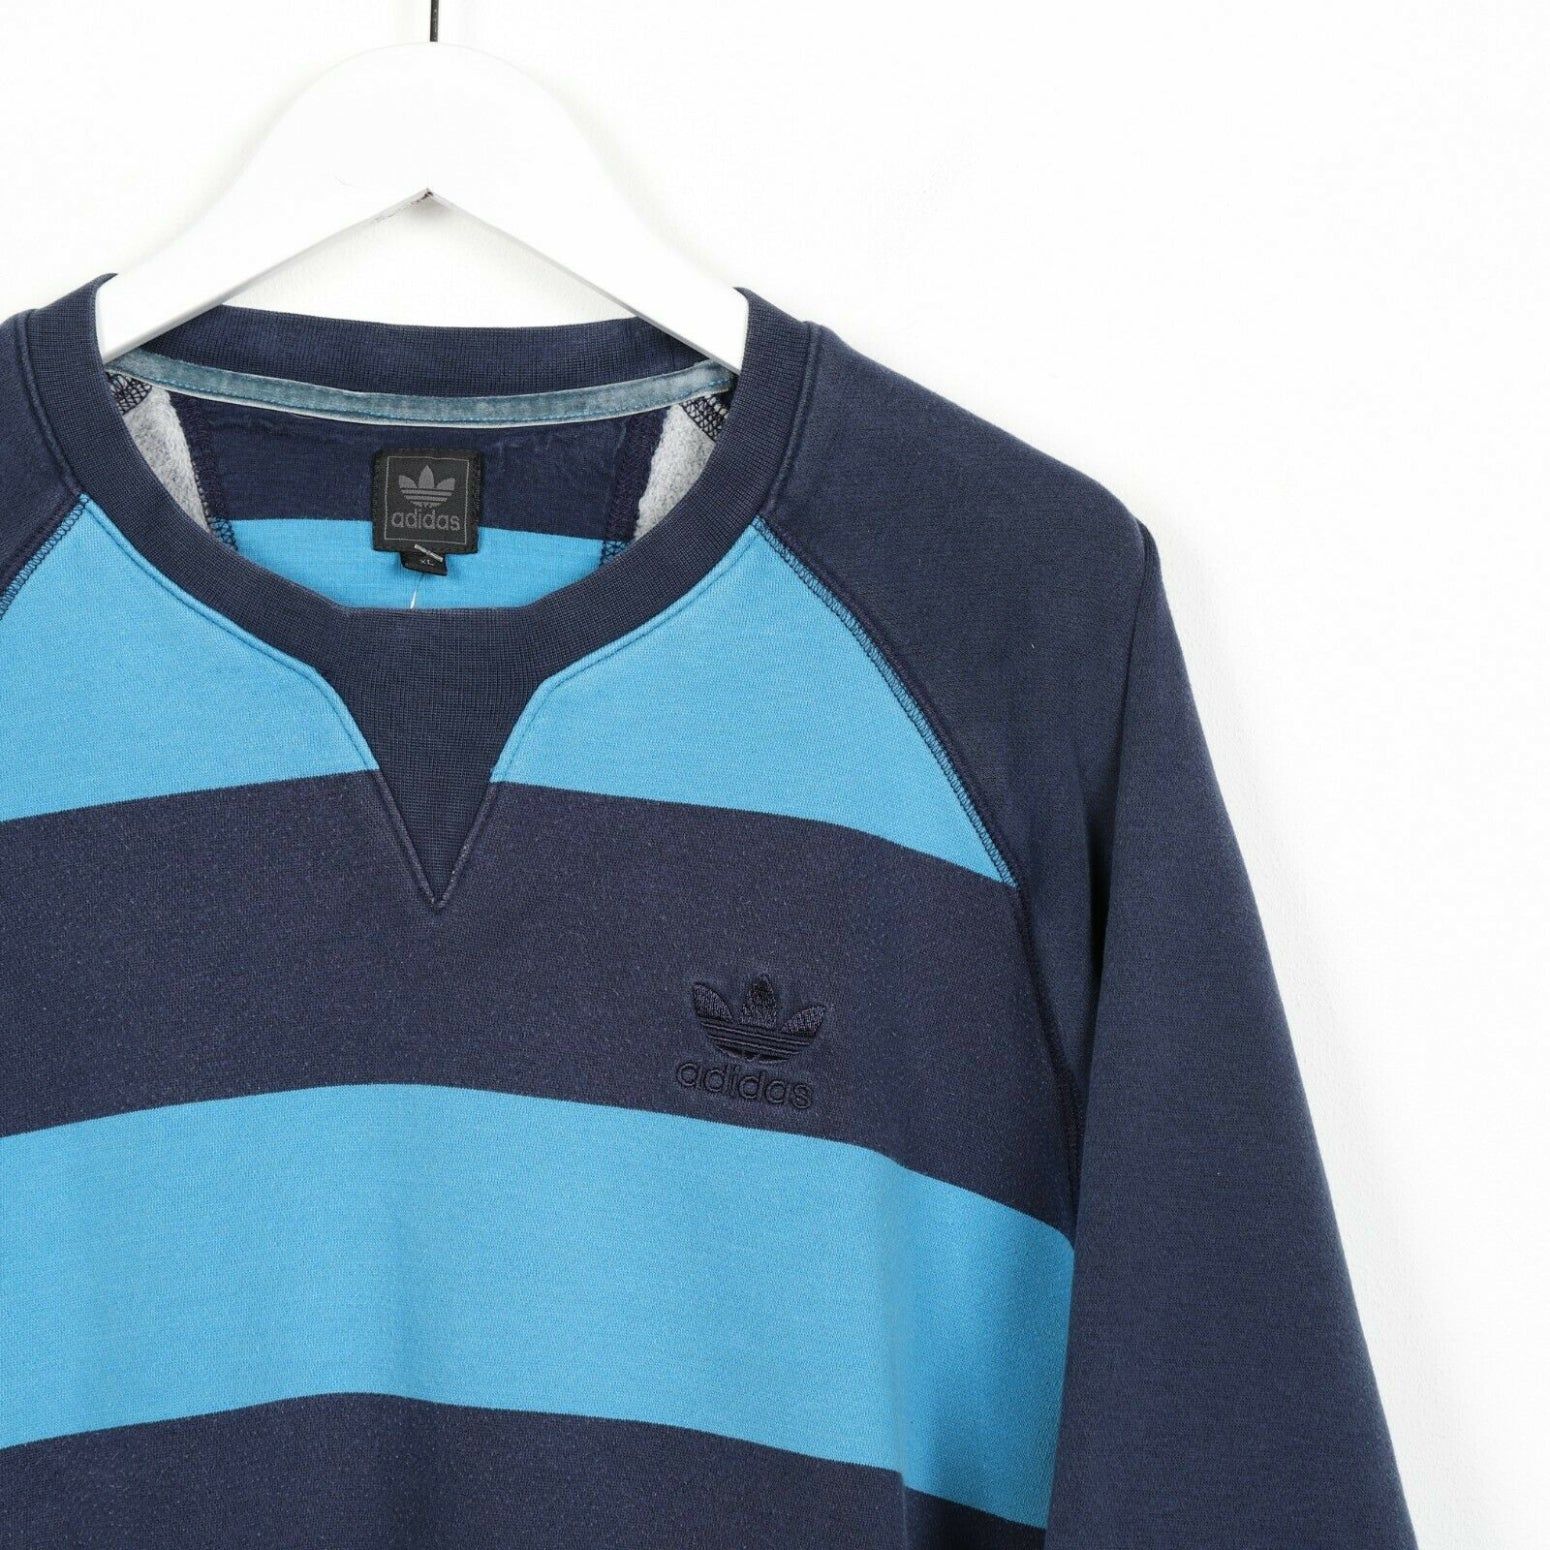 Vintage ADIDAS ORIGINALS Small Logo Striped Sweatshirt Jumper Blue XL